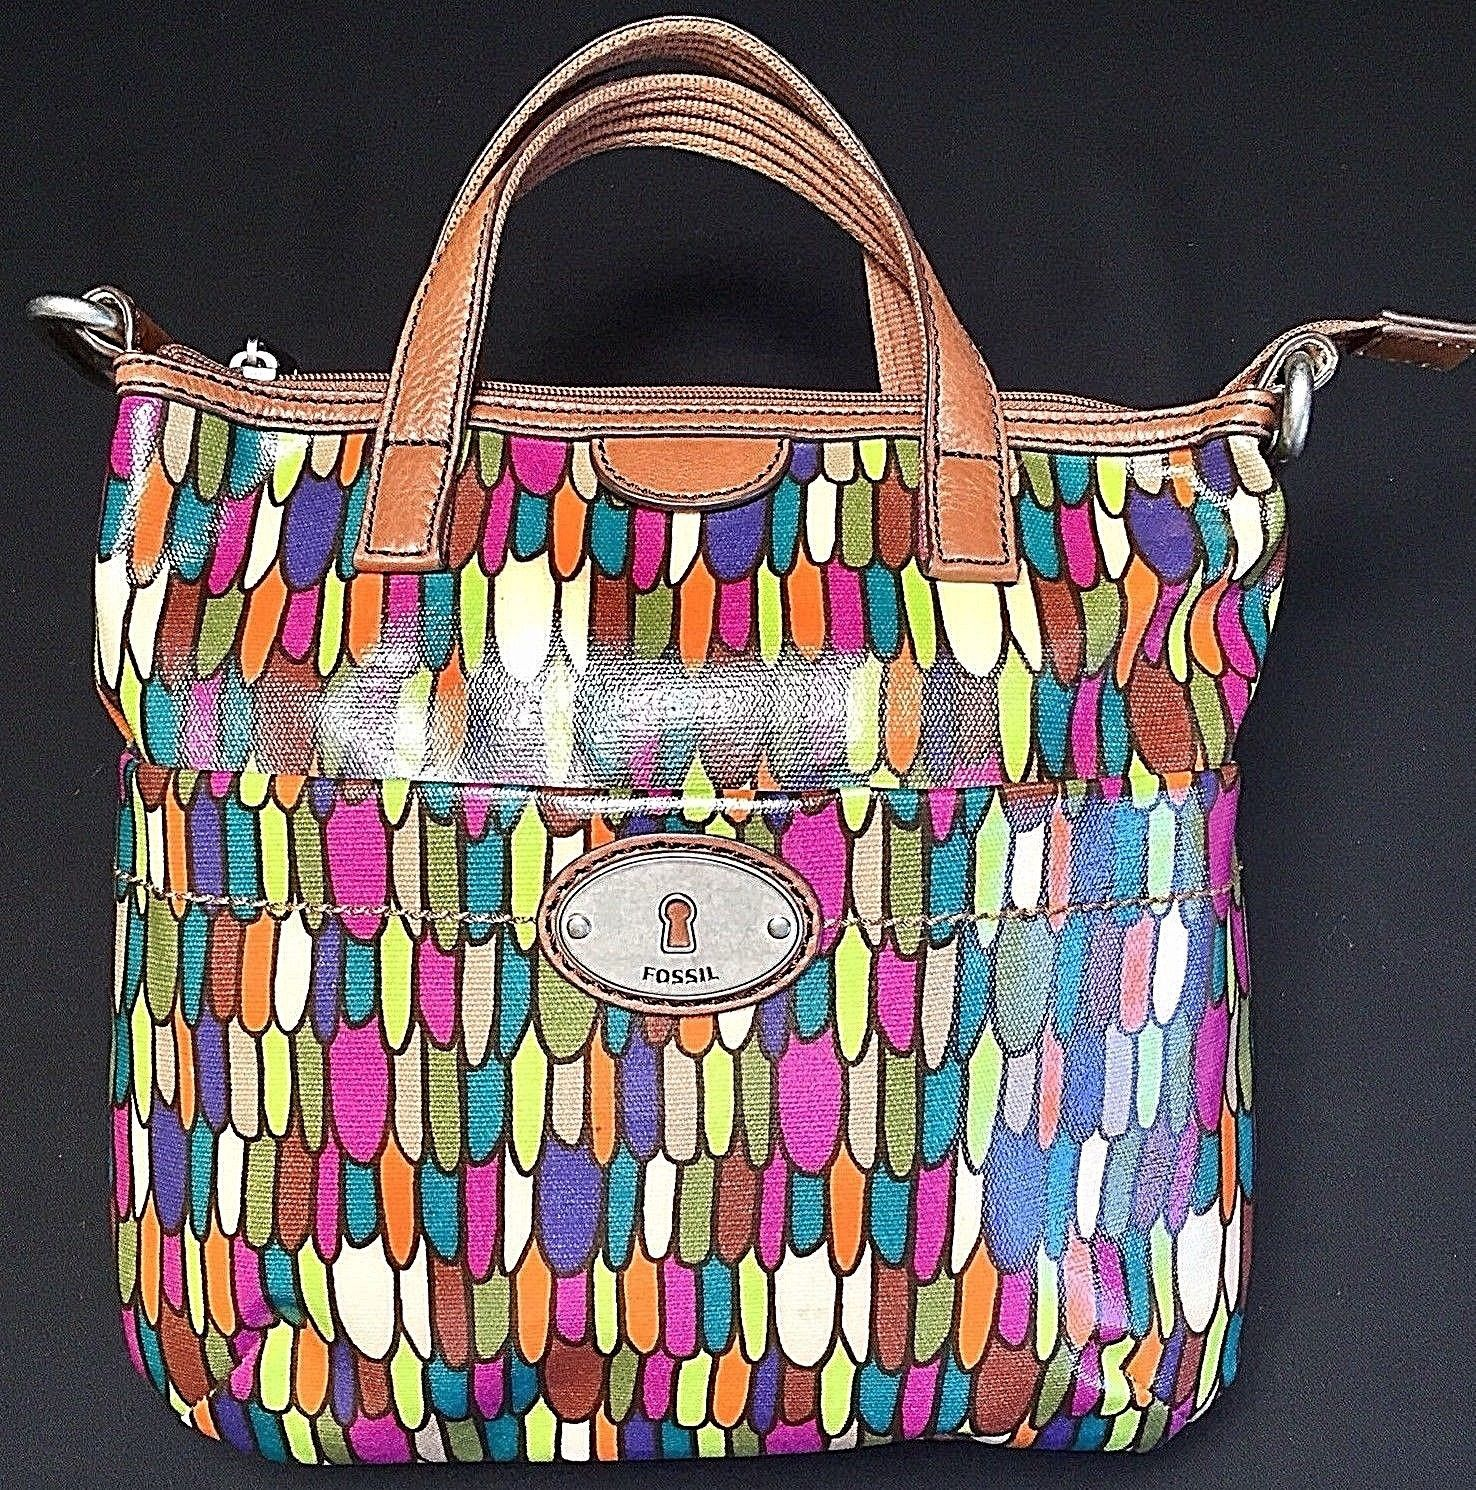 Fossil Calypso Key Per ZB5125 Multi Color Feather Print Coated Canvas Tote Bag